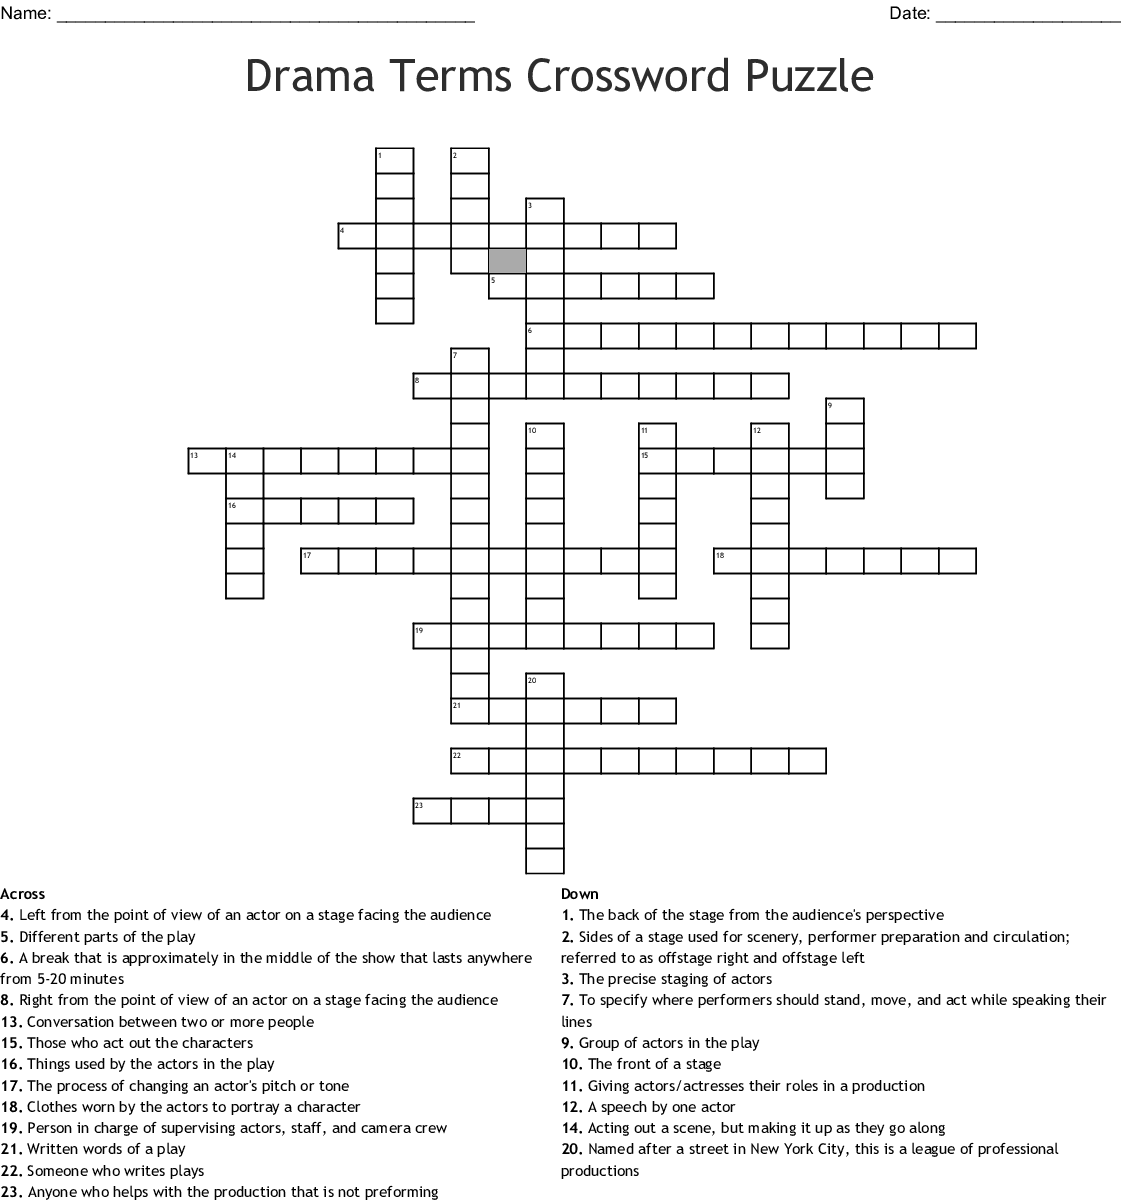 Drama Terms Crossword Puzzle - WordMint